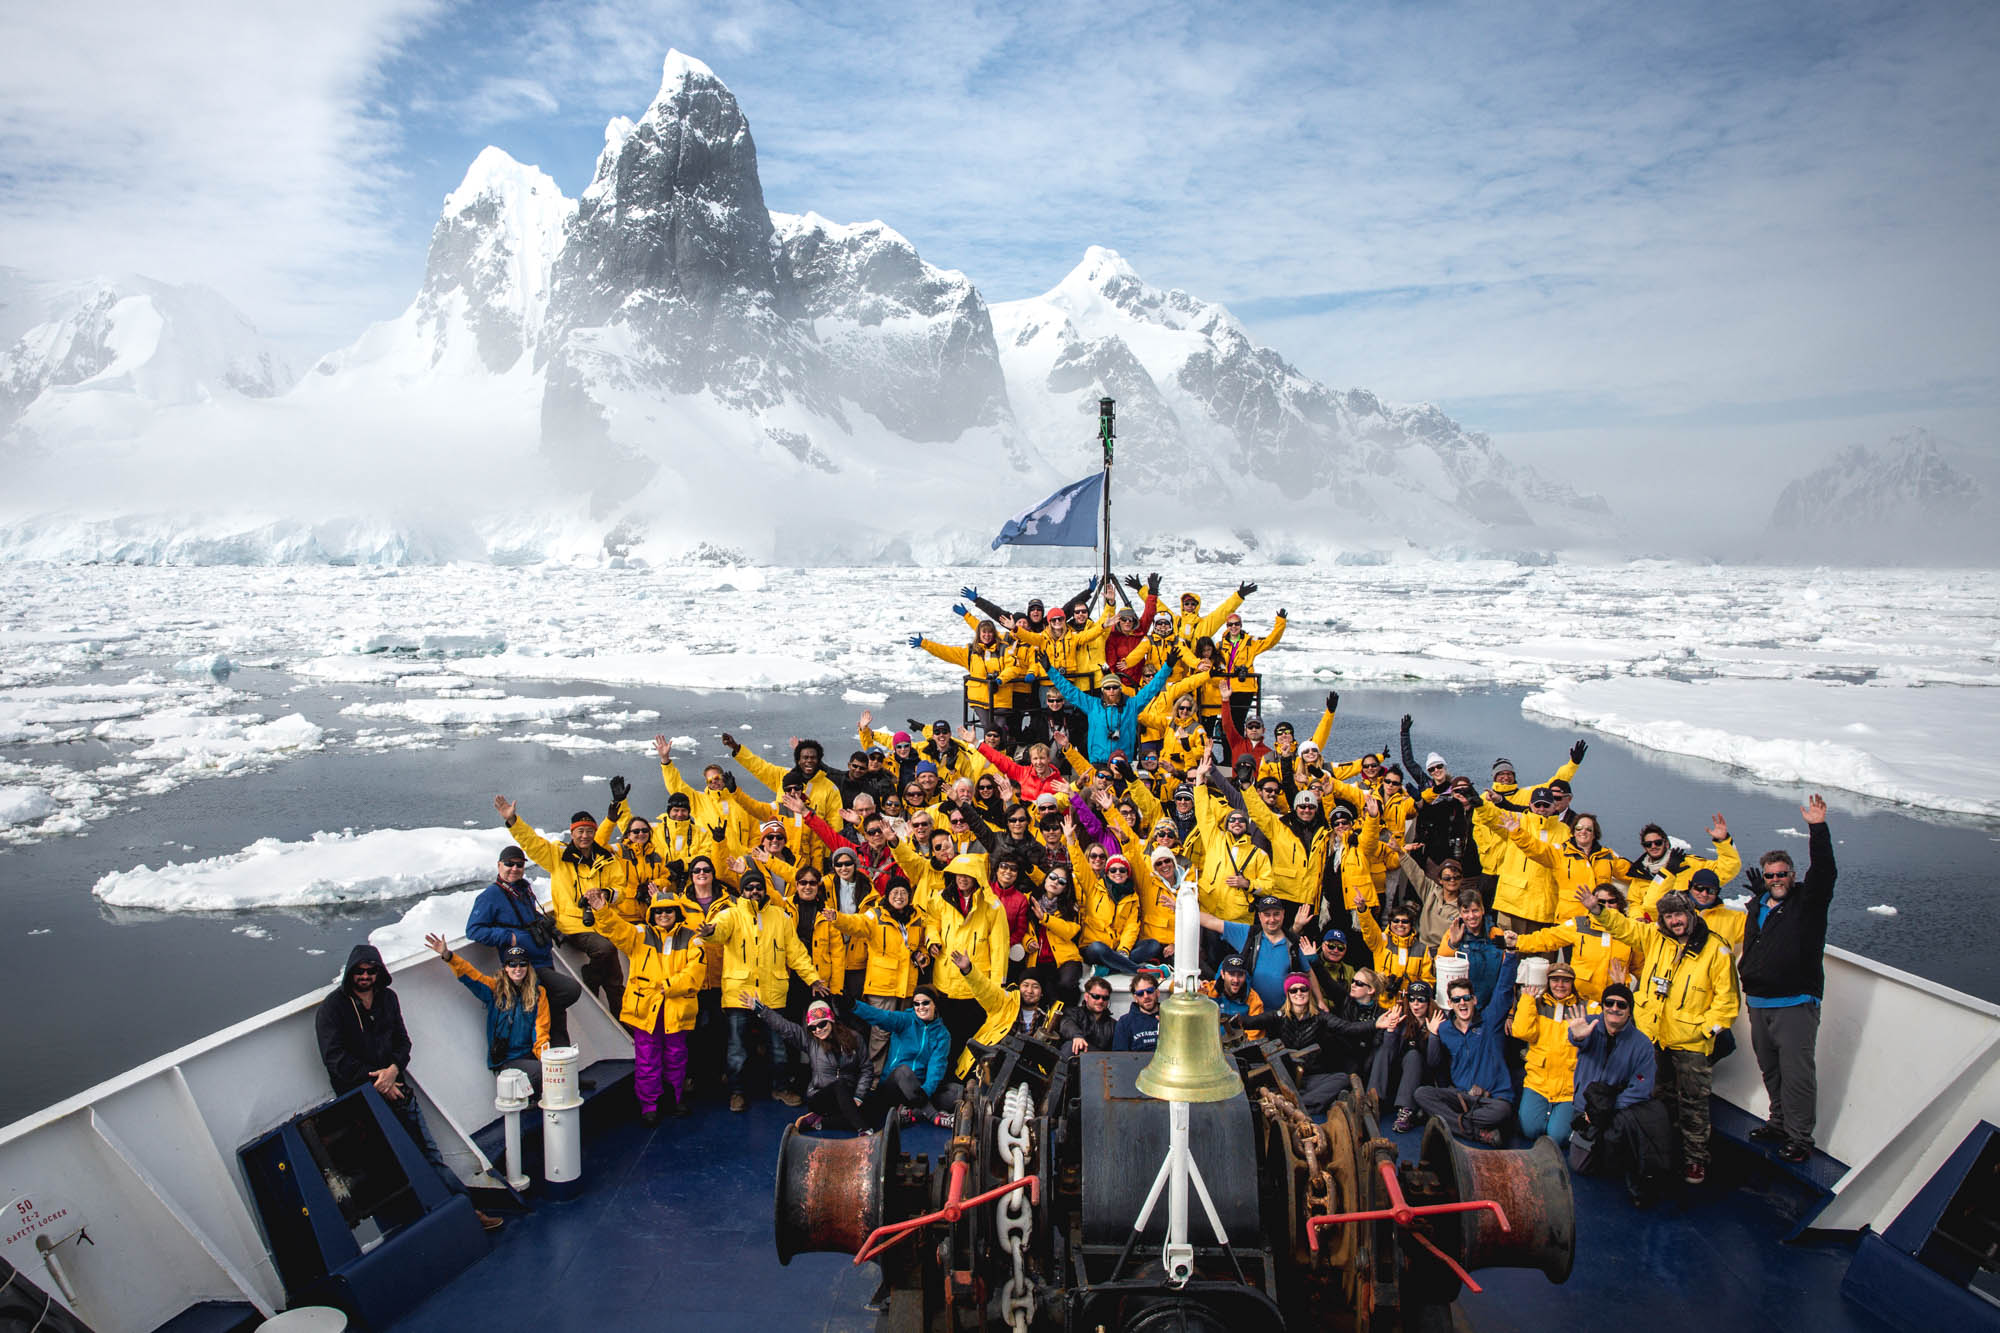 Passengers pose for a group photo on the bow of the ship